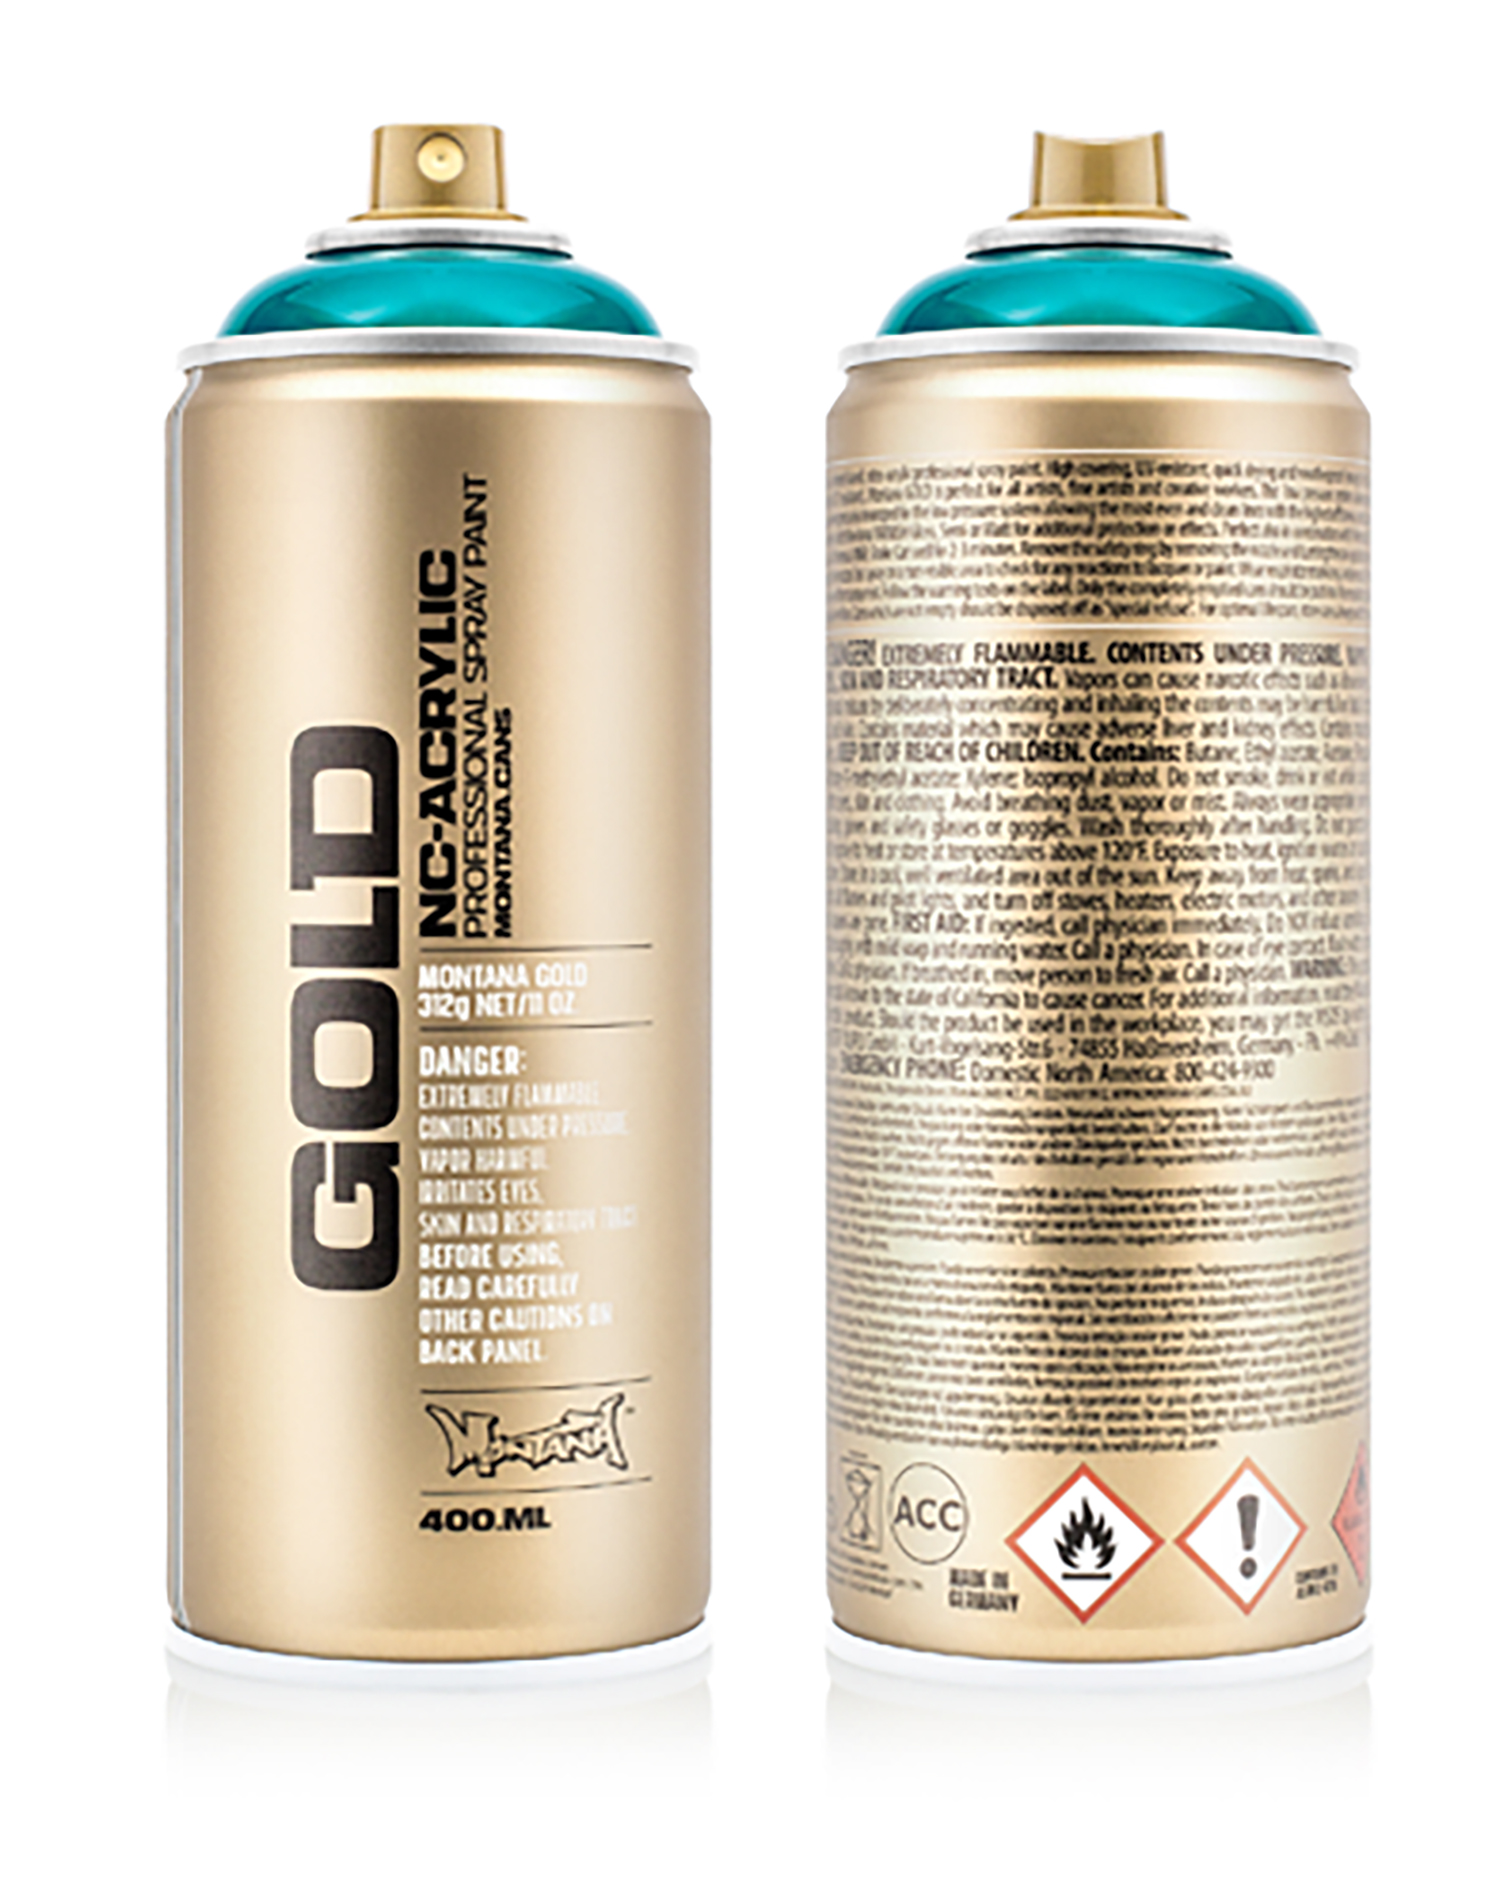 MONTANA-GOLD-SPRAY-400ML-T6270